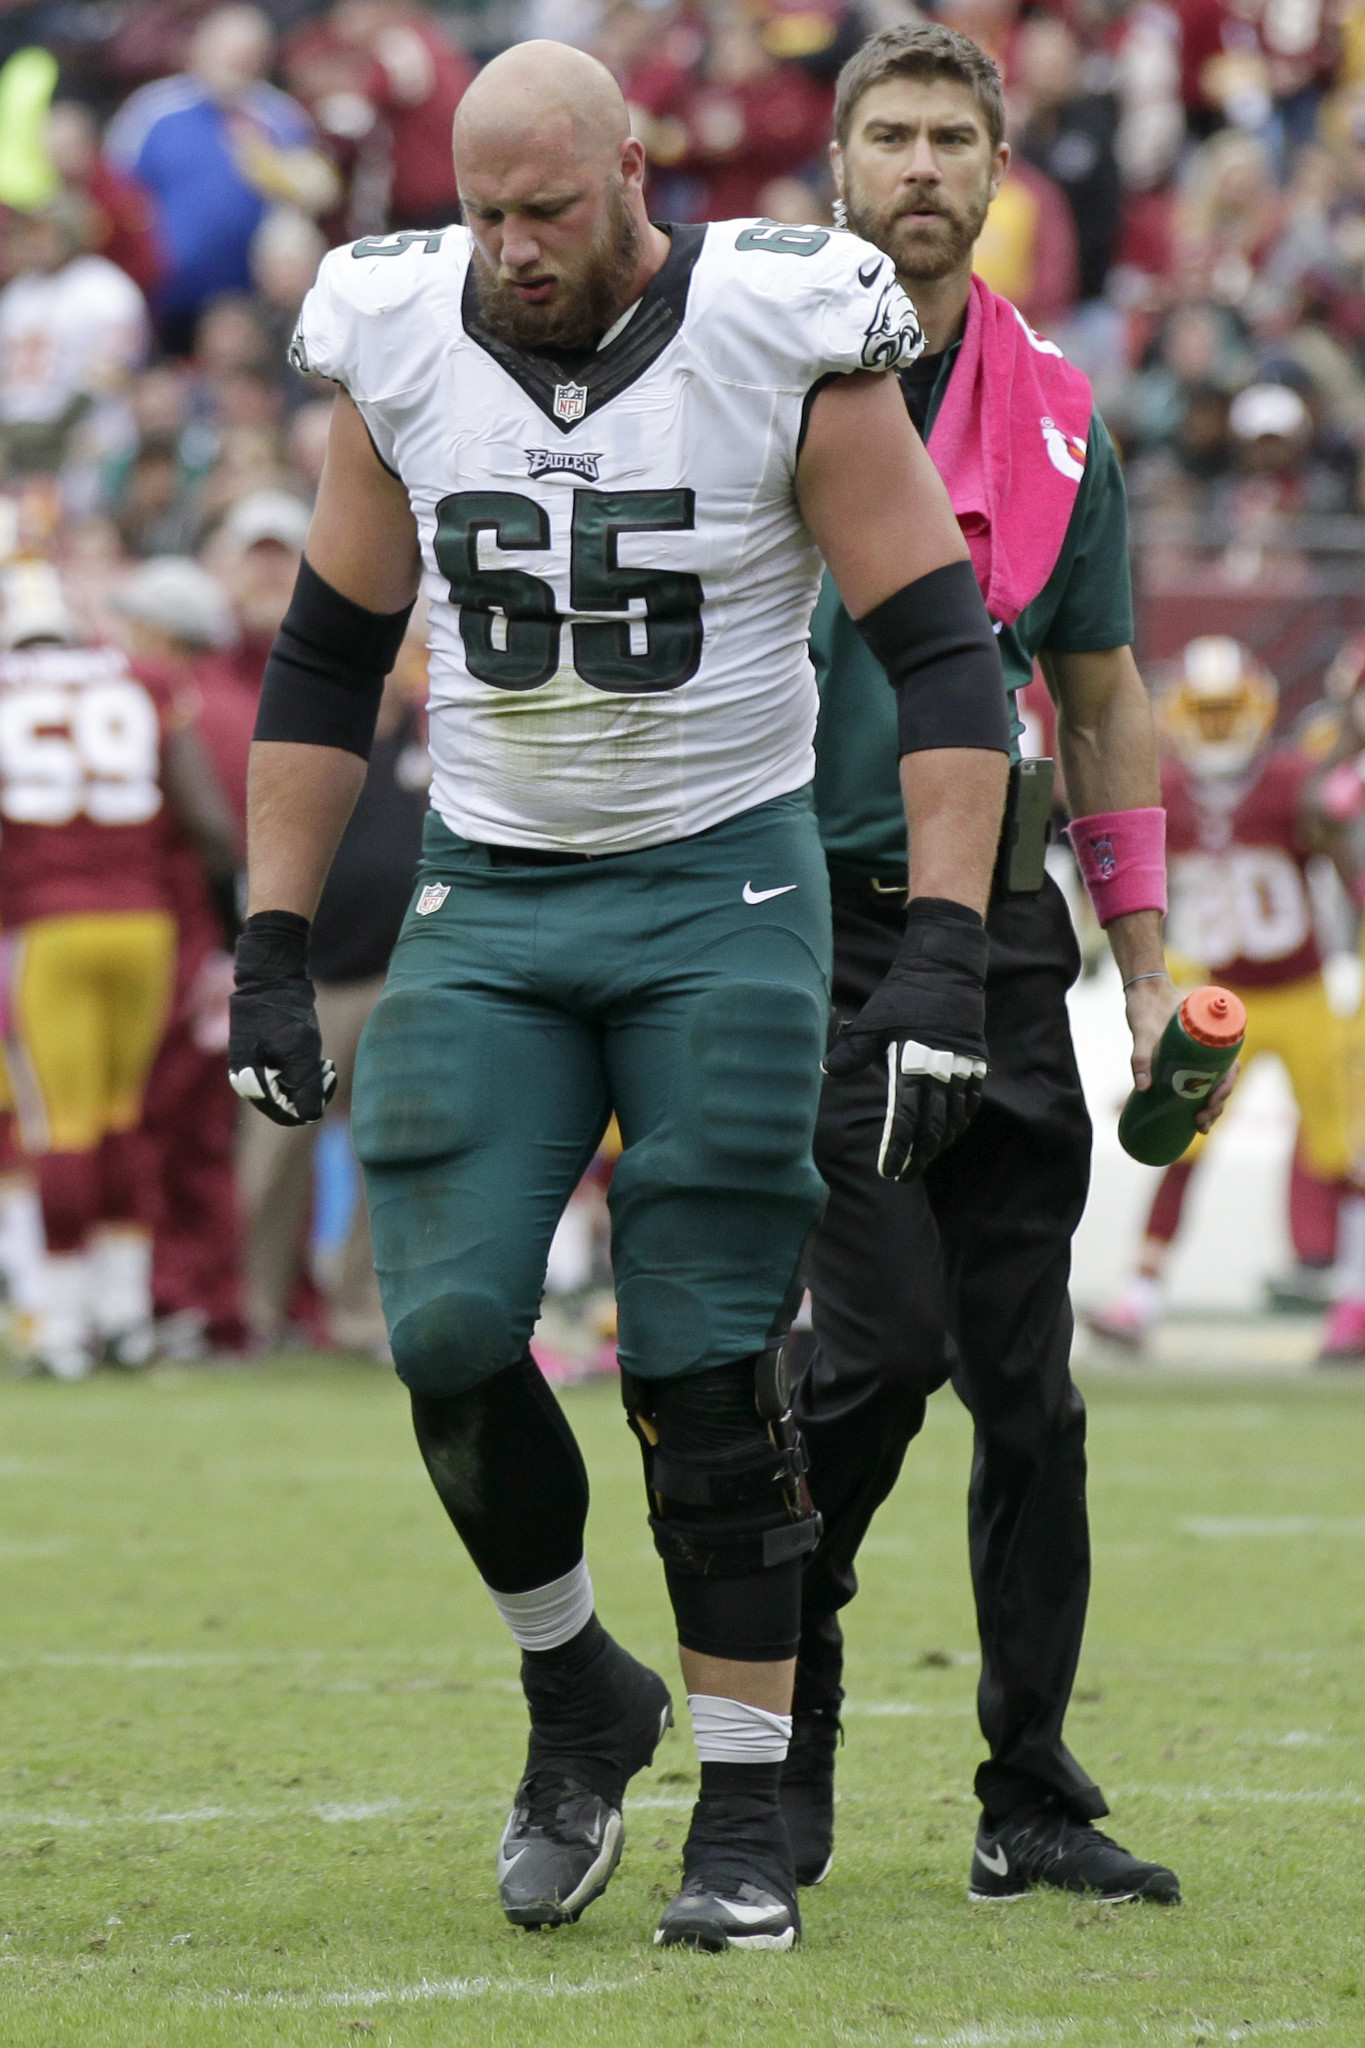 Eagles T Lane Johnson does damage control after statement offends